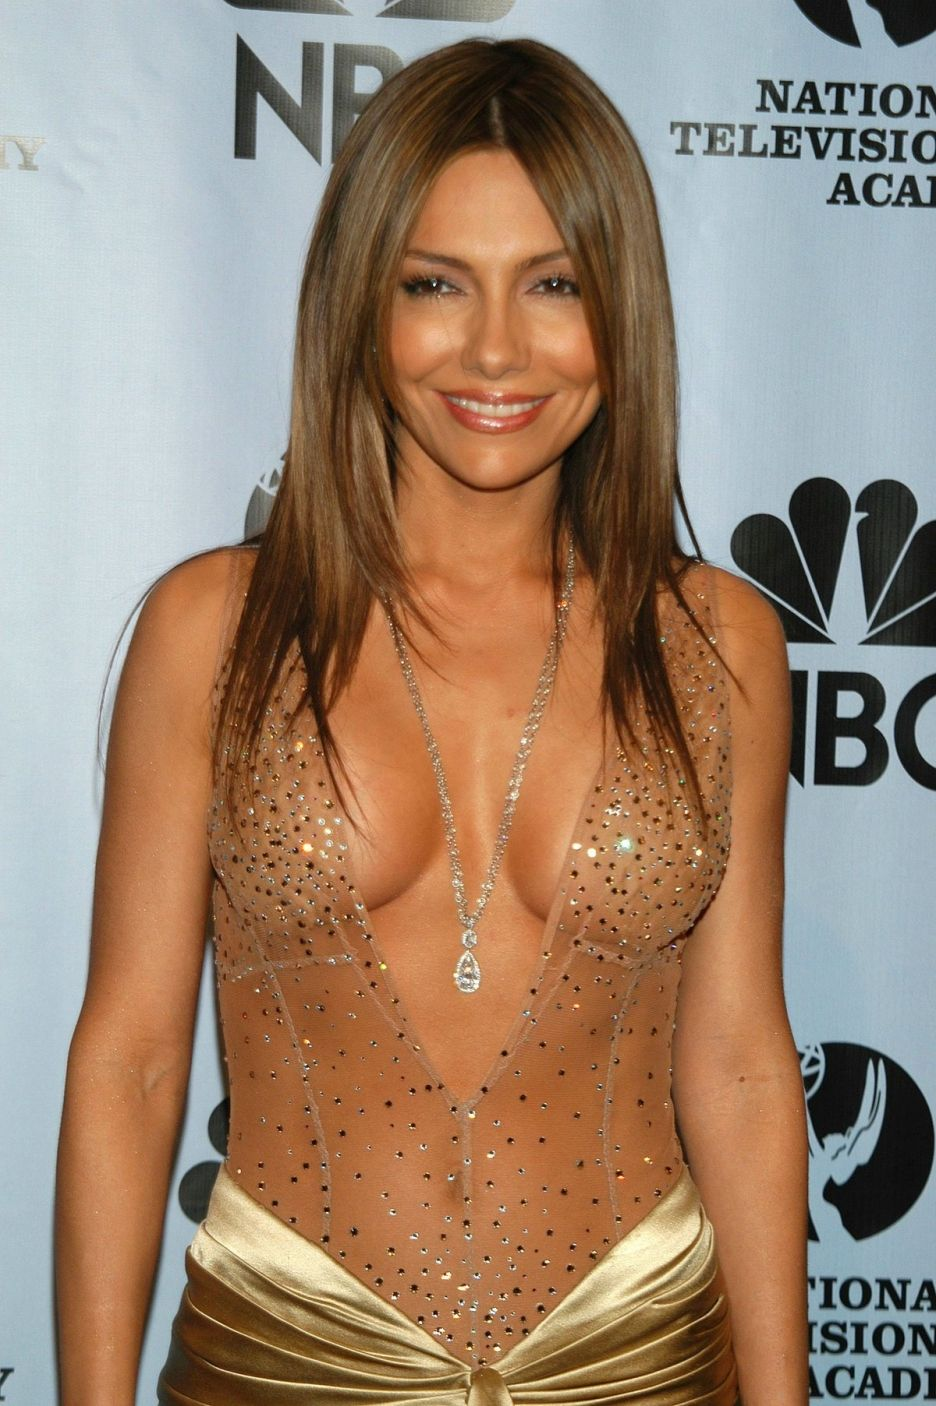 Naked Pictures Of Vanessa Marcil 92